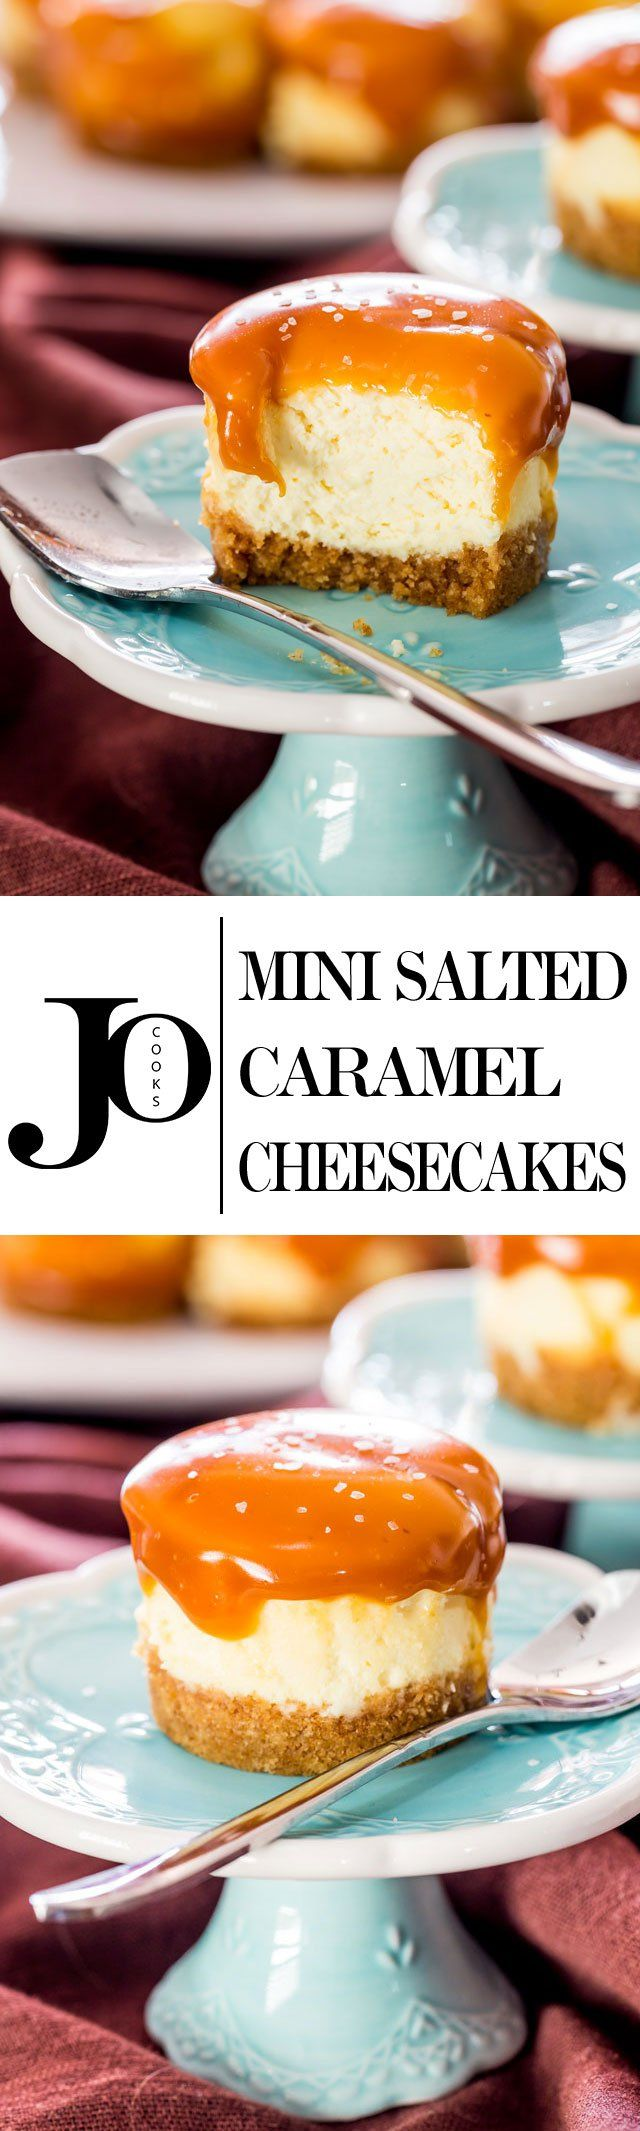 Mini Salted Caramel Cheesecakes - creamy bite-sized cheesecakes with a graham cracker crust and topped with a delicious salted caramel!